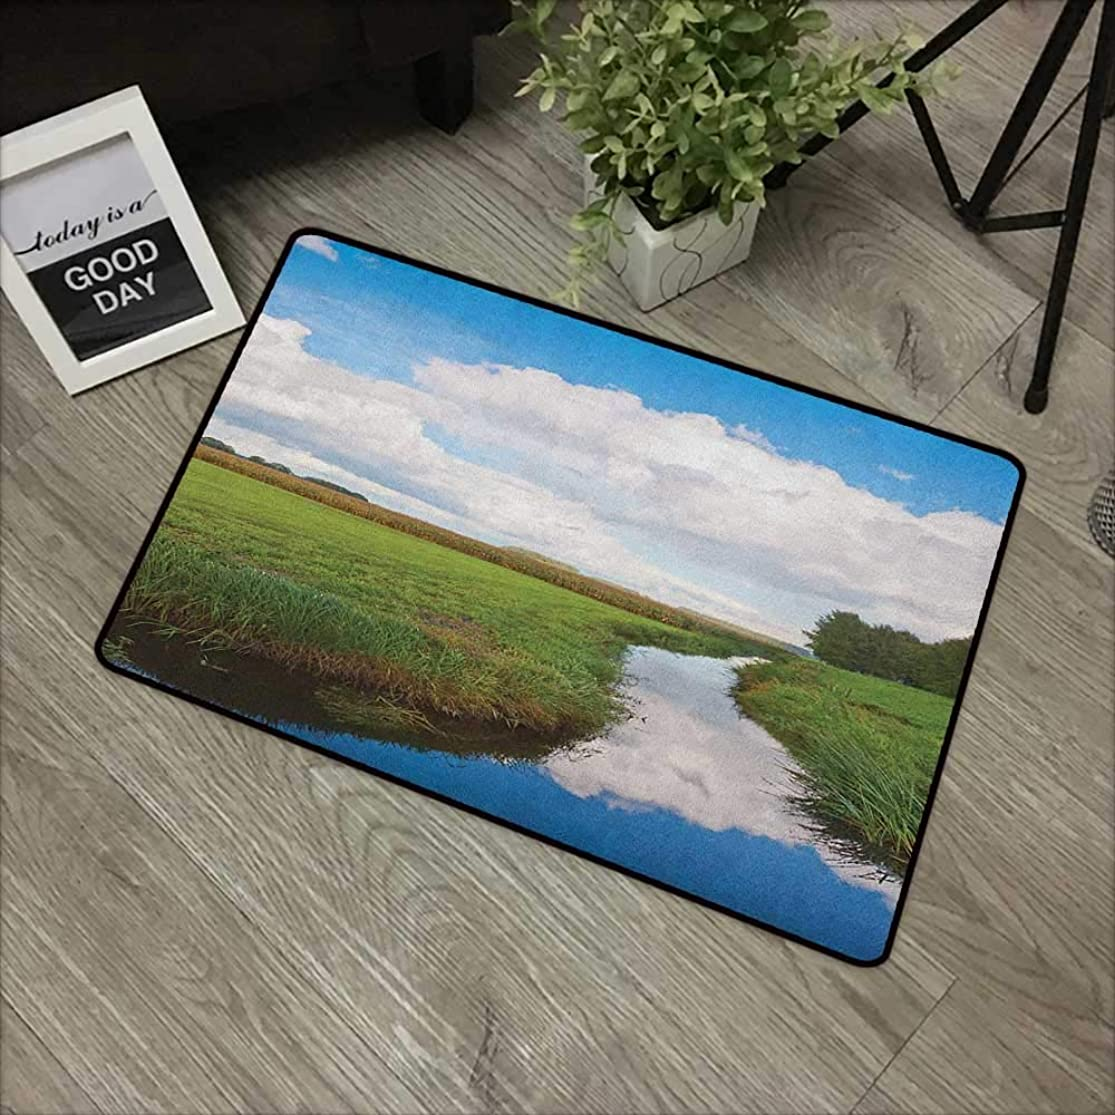 Outdoor door mat W31 x L47 INCH Landscape,Reflective Calm River Scenery Meadow Grass Clouds Wildflowers Trees Shrubs, Green Blue White Natural dye printing to protect your baby's skin Non-slip Door Ma rniwnfwb4